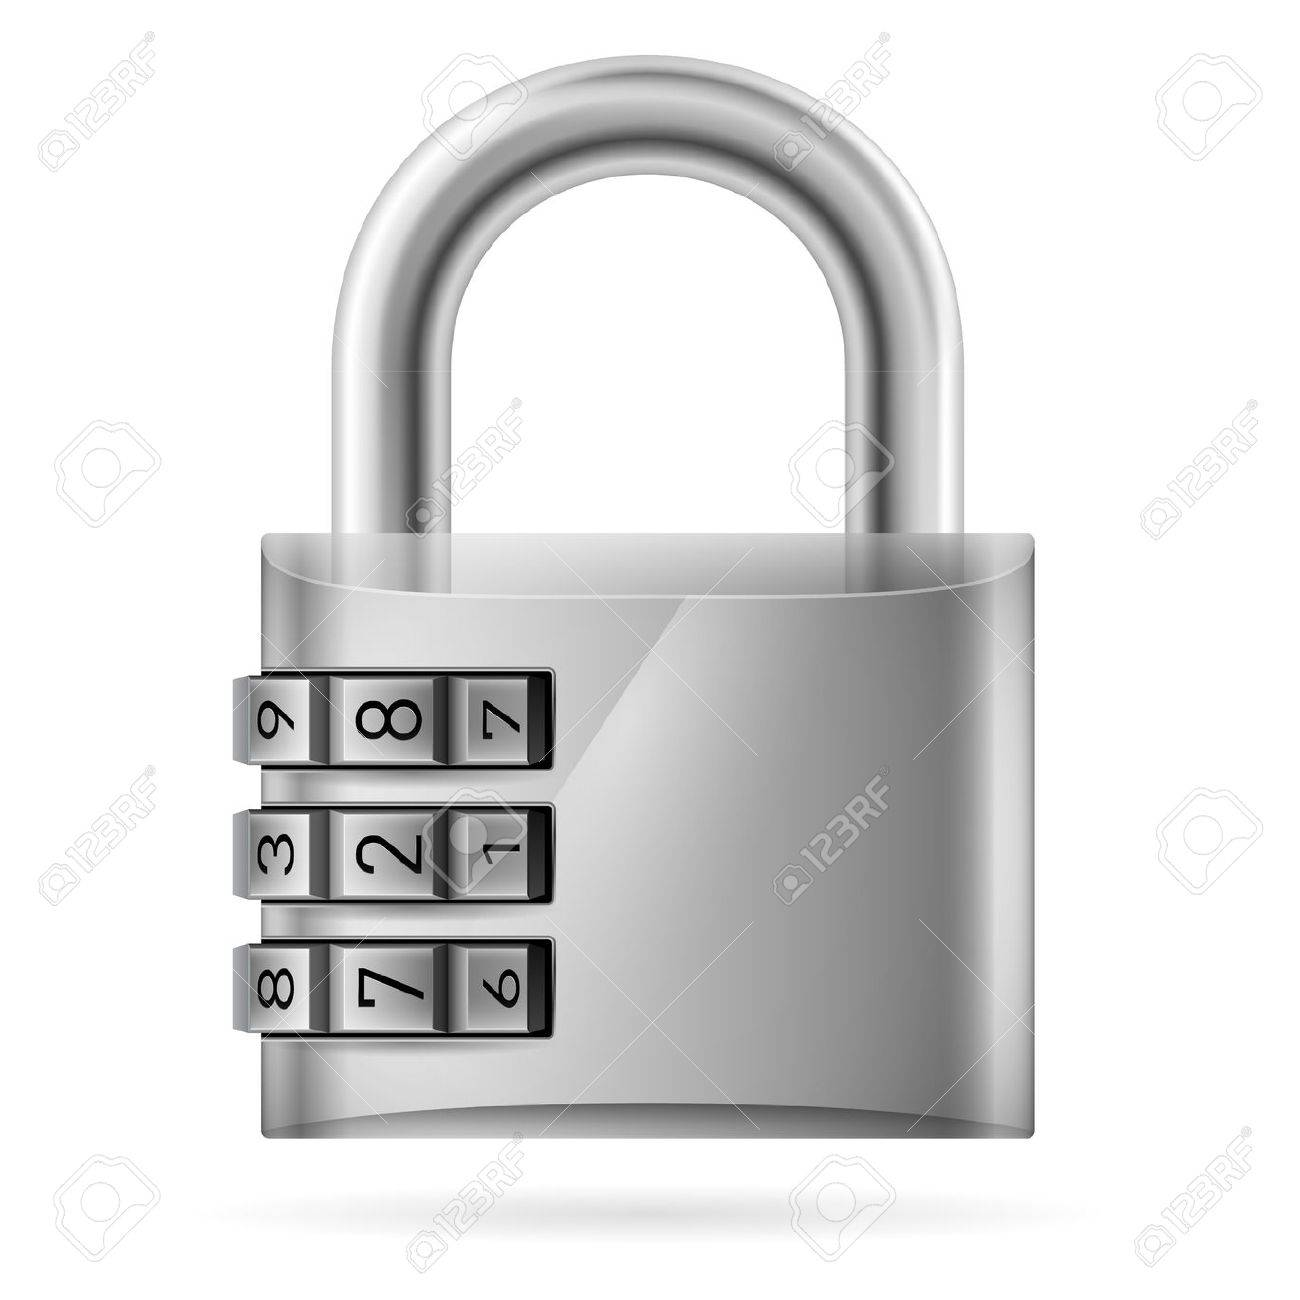 996559579764 Security concept with locked combination pad lock. Illustration..